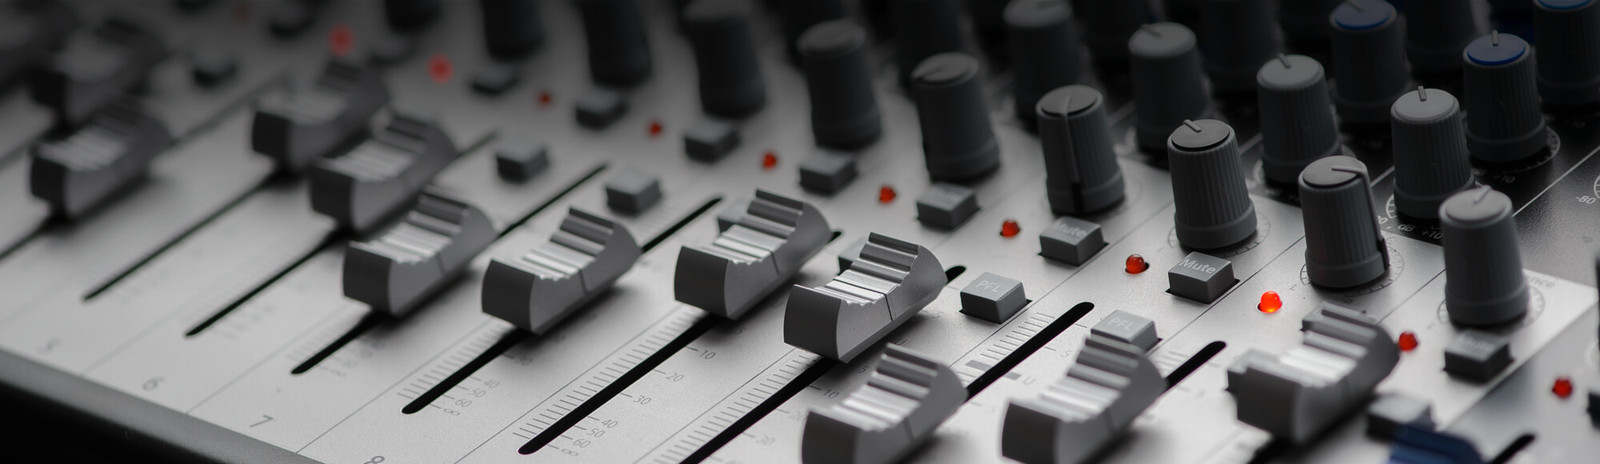 Analogue Mixers